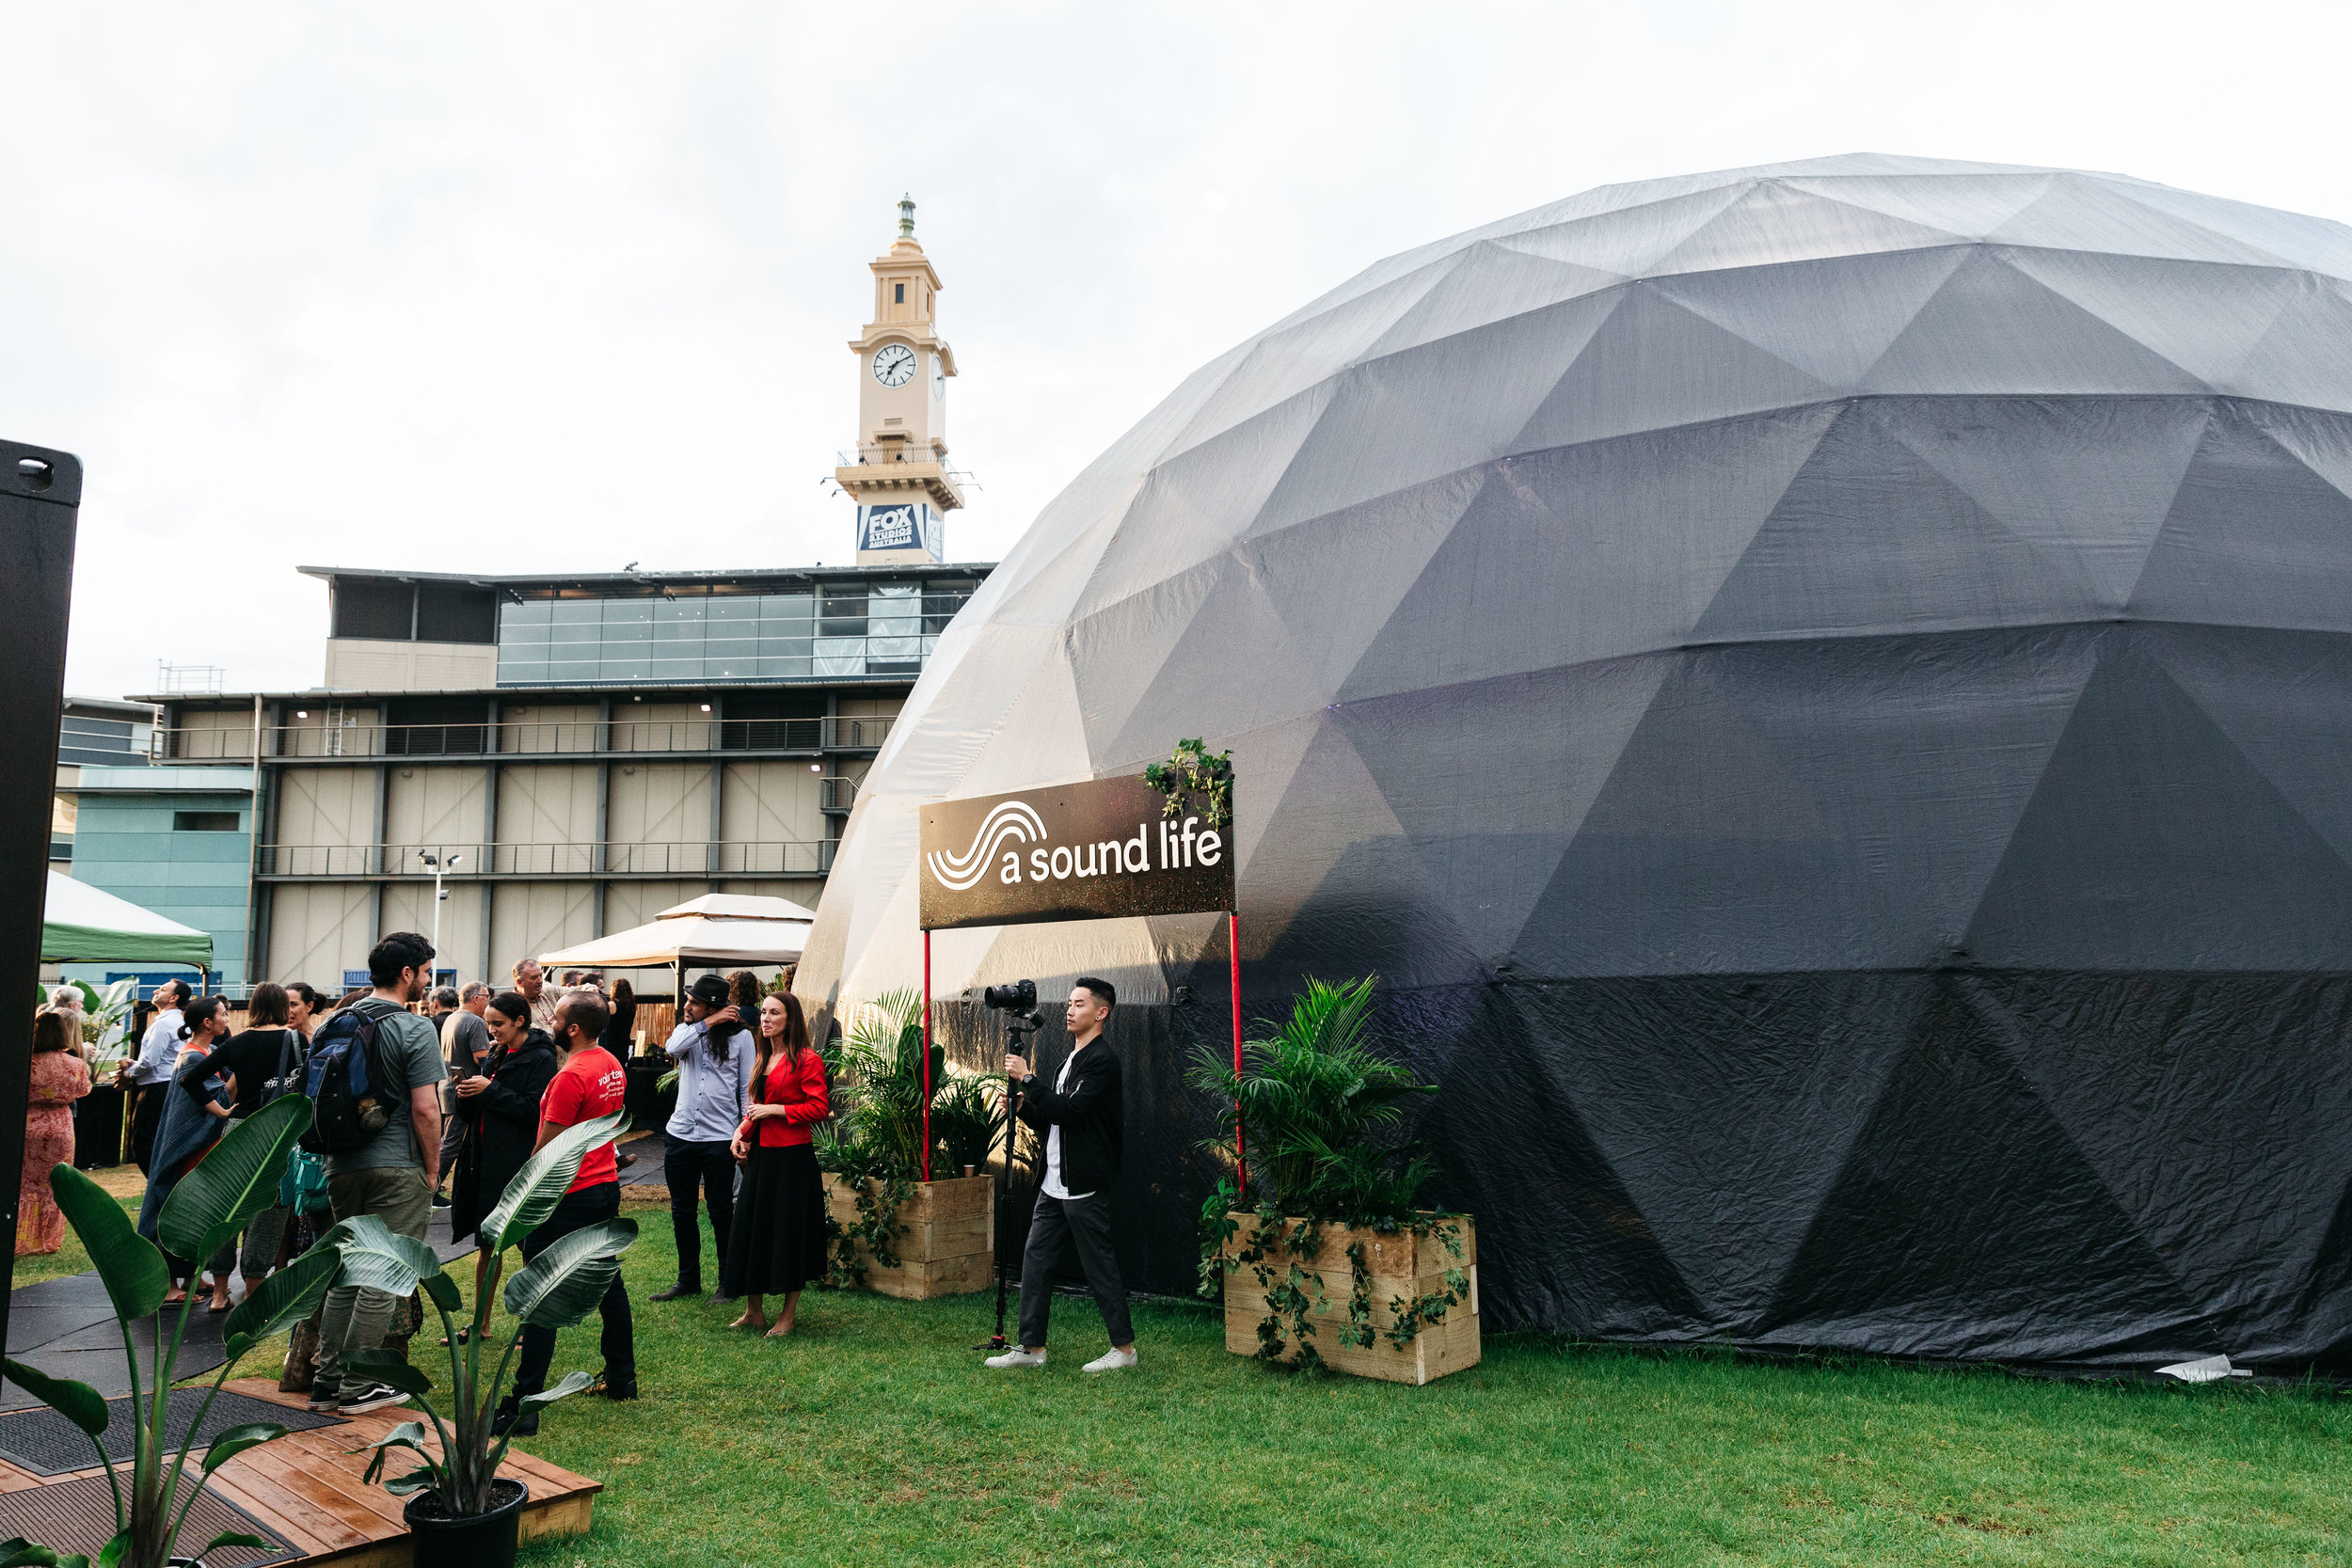 A   Sound Life Dome  in Sydney